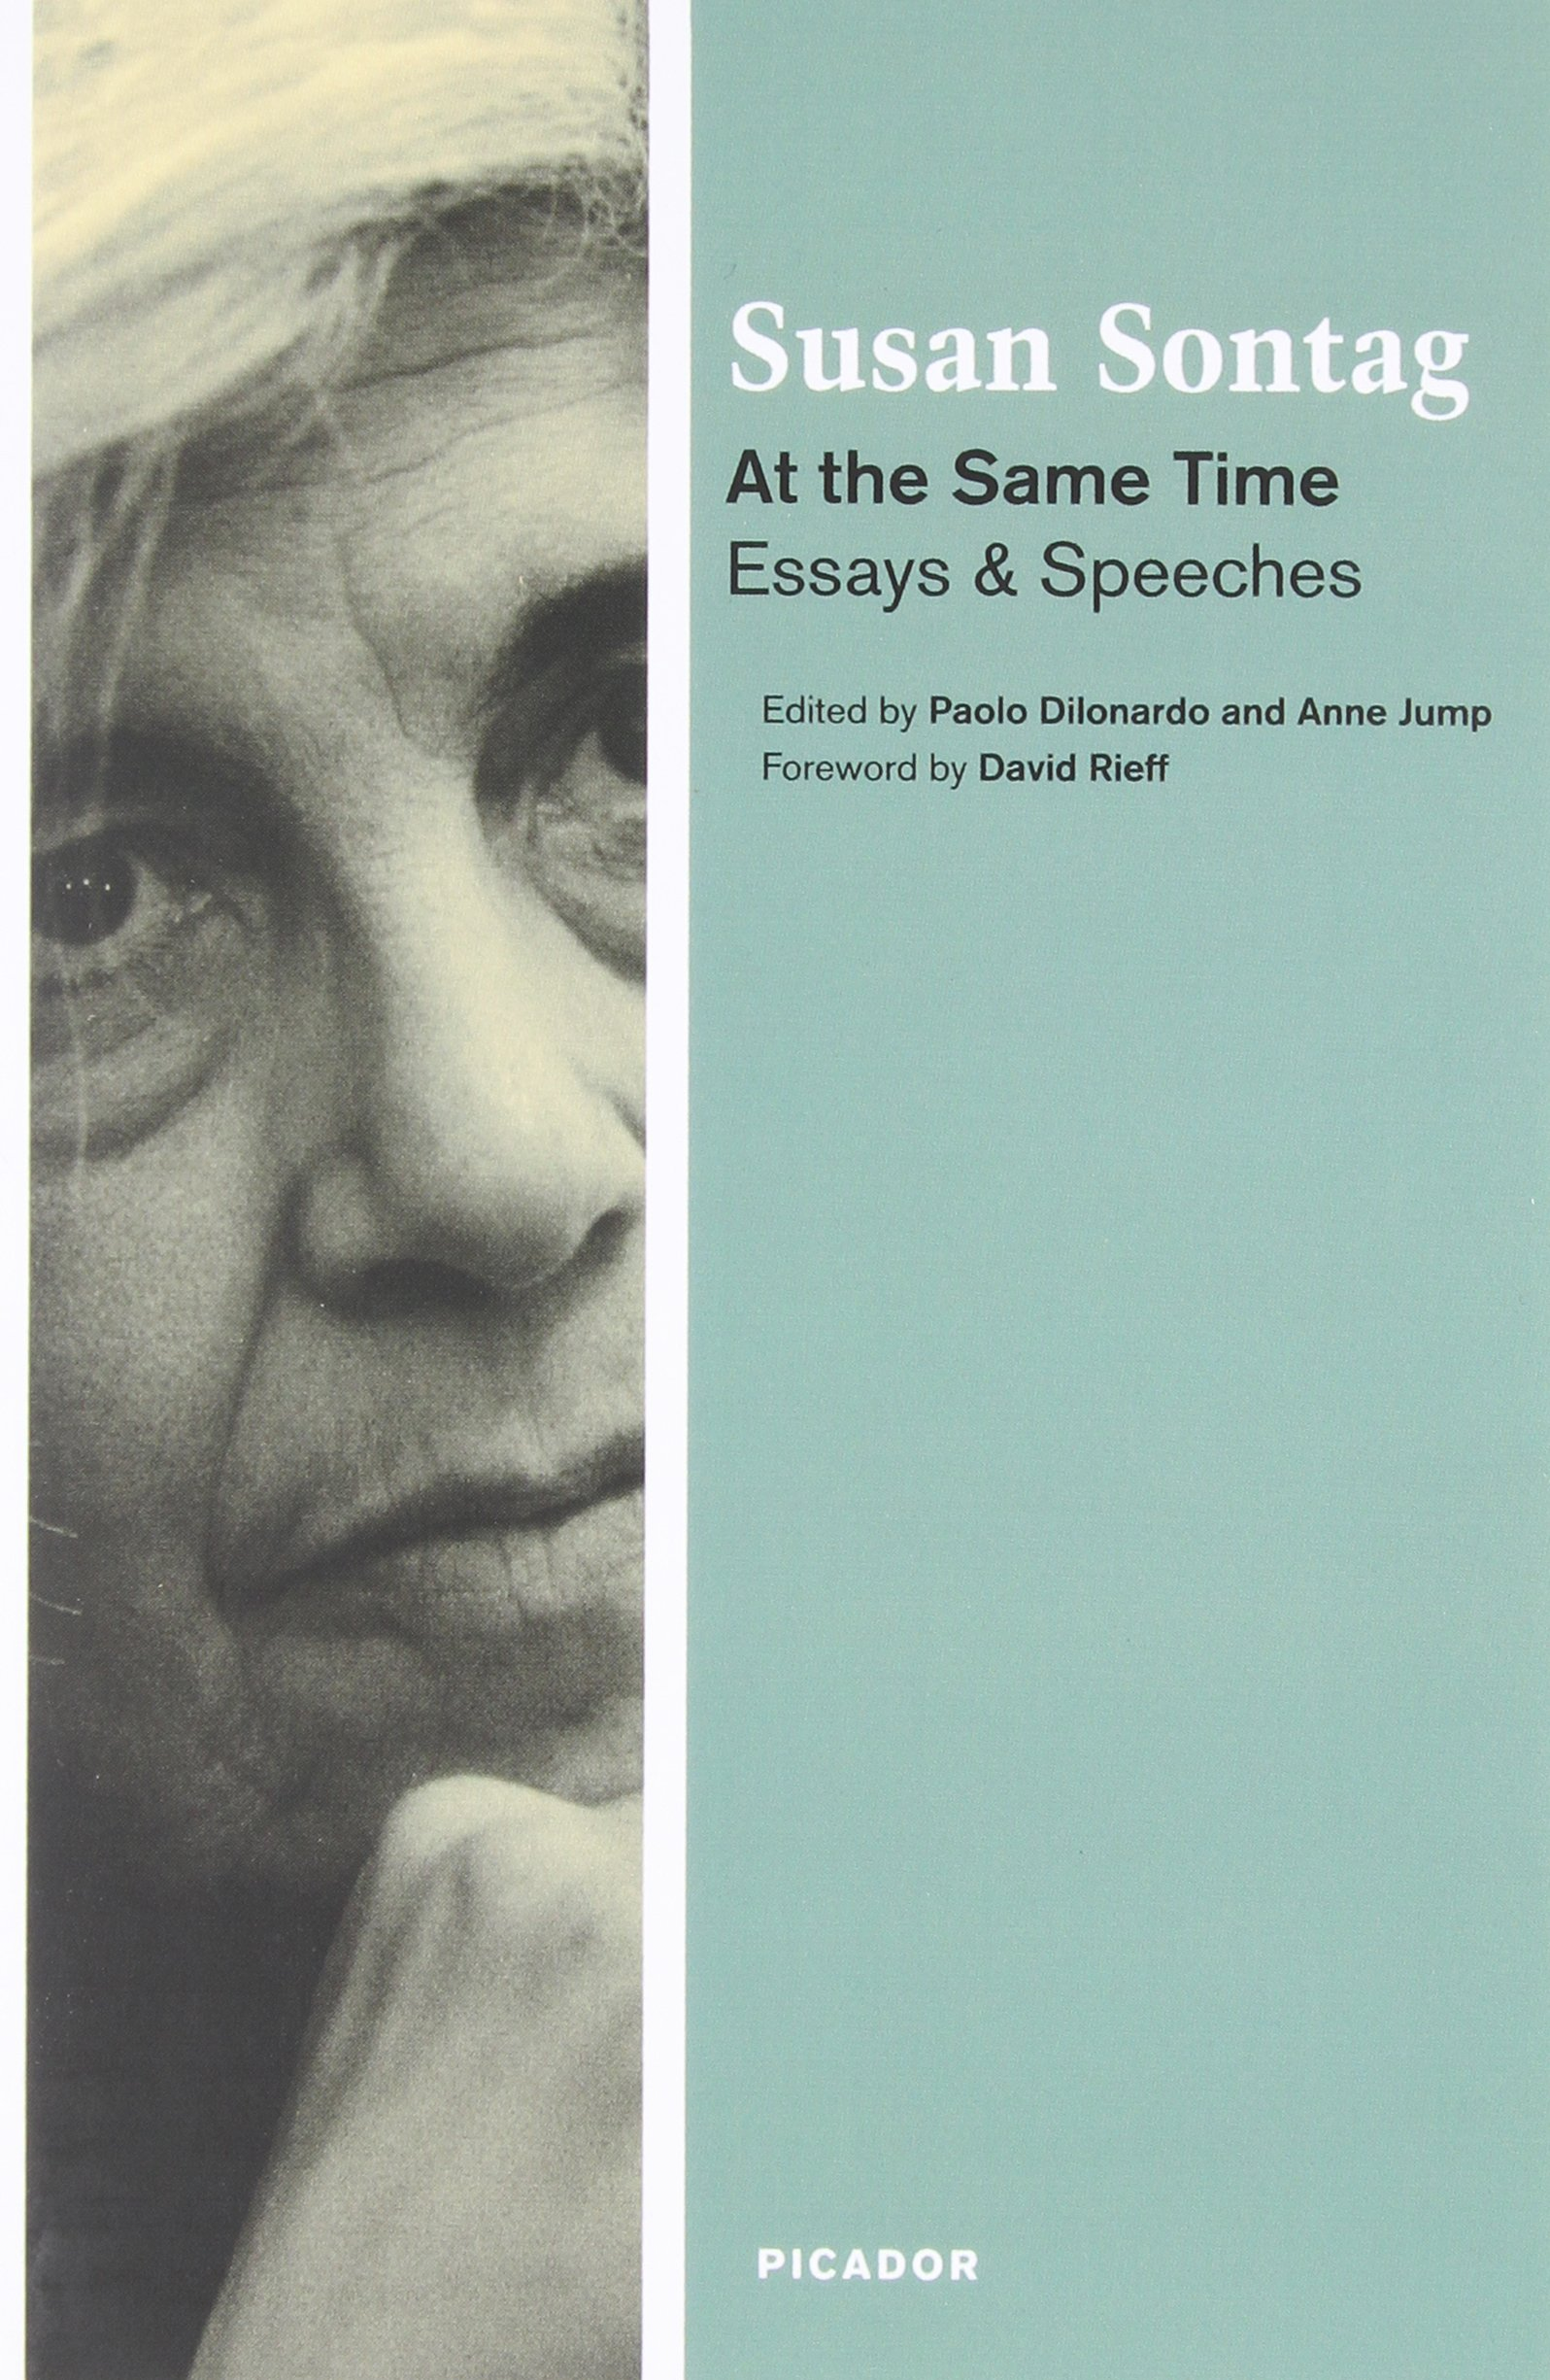 at the same time essays and speeches susan sontag paolo at the same time essays and speeches susan sontag paolo dilonardo anne jump david rieff 9780312426712 com books